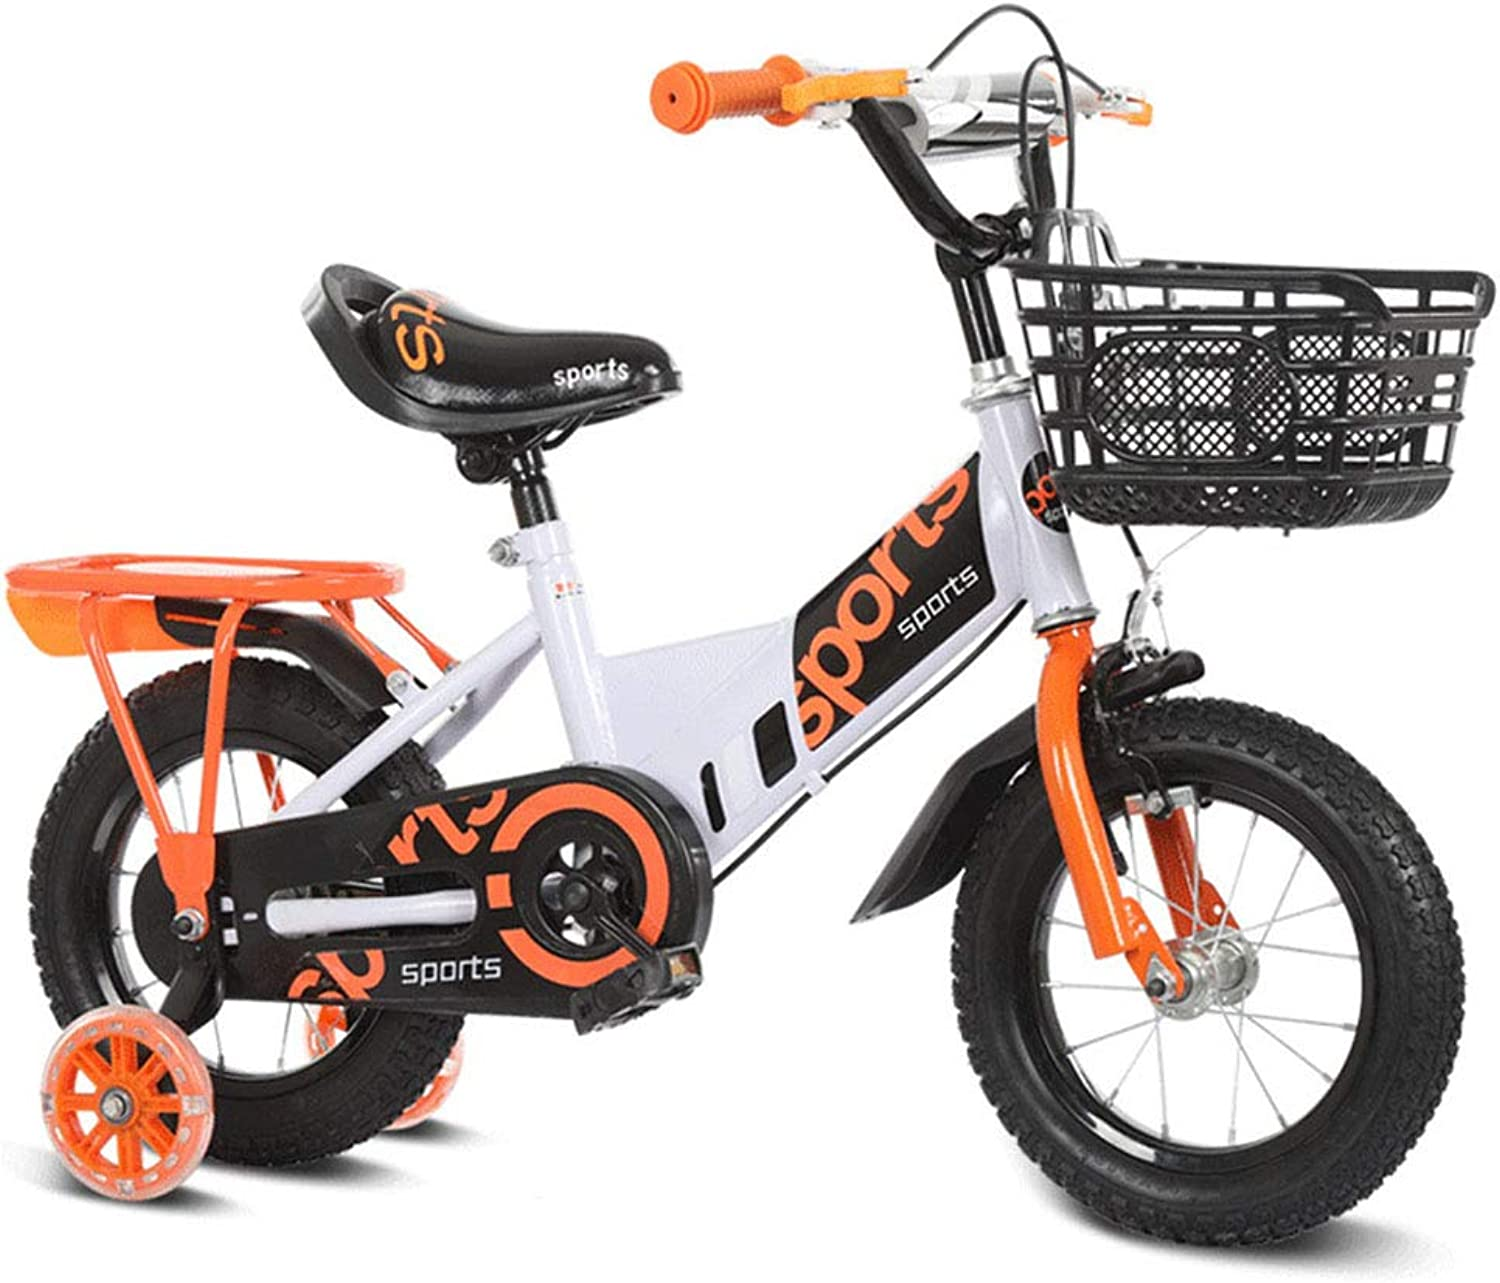 1-1 12  14  16  18  Kids bike Boys and Girls with alloy kickstand V-brake and backpedal brake   as from 2 years   BMX Edition